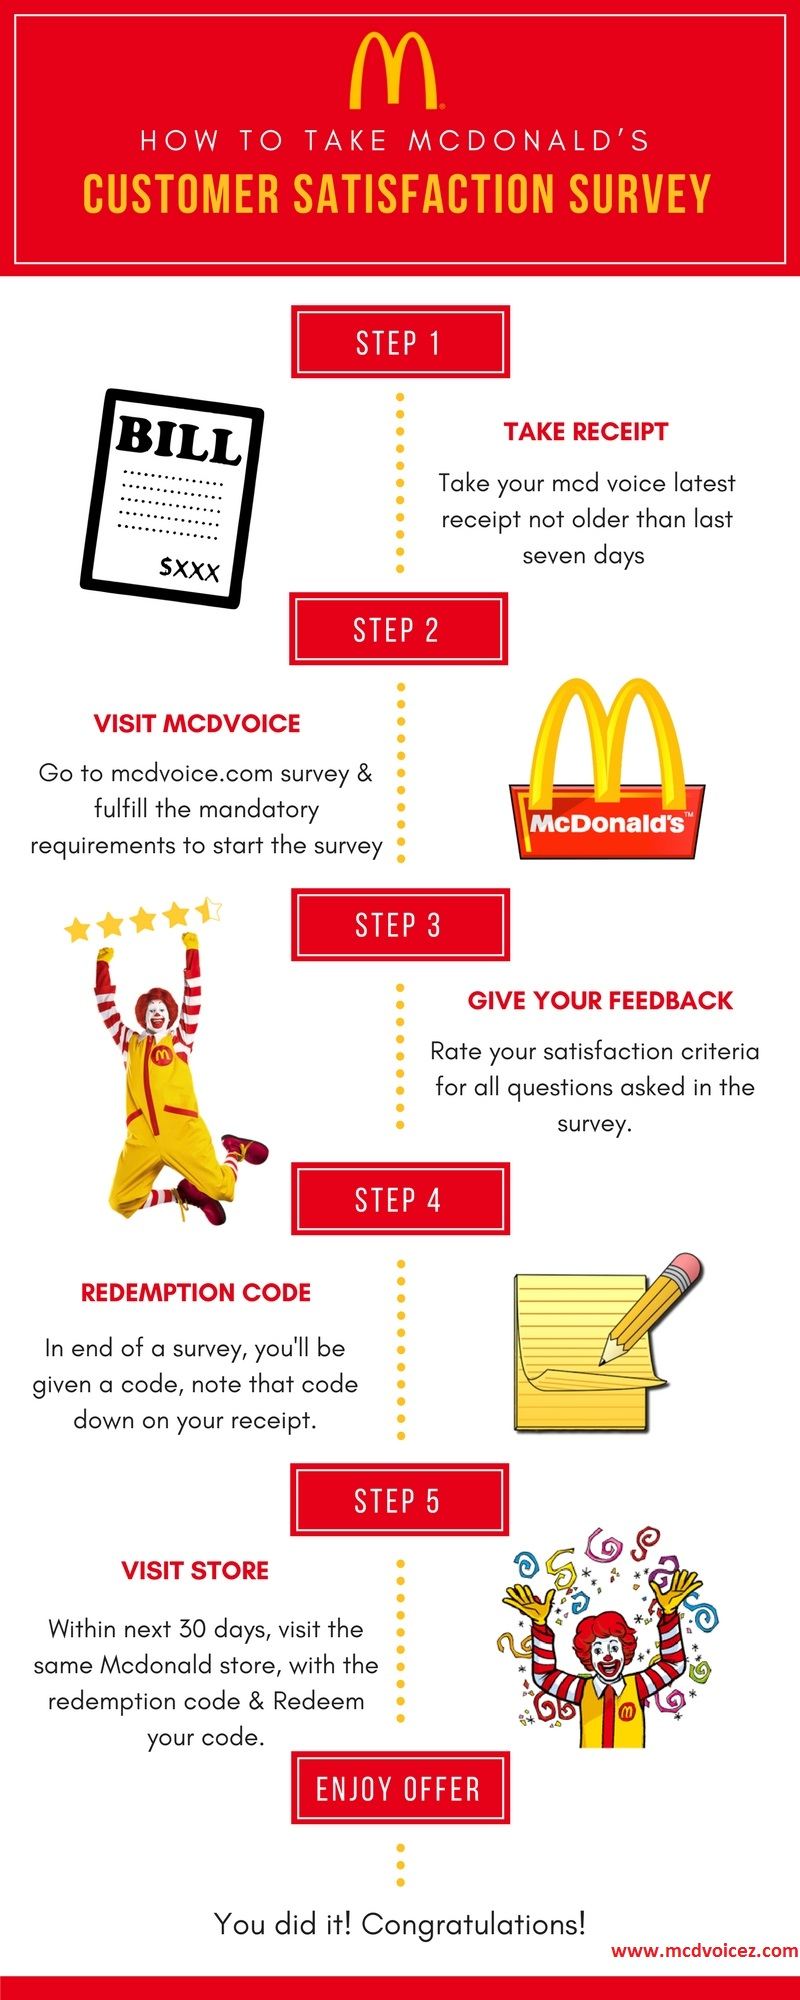 McDVoice Survey : How To Take McDonald's Customer Satisfaction Survey At www.mcdvoice.com